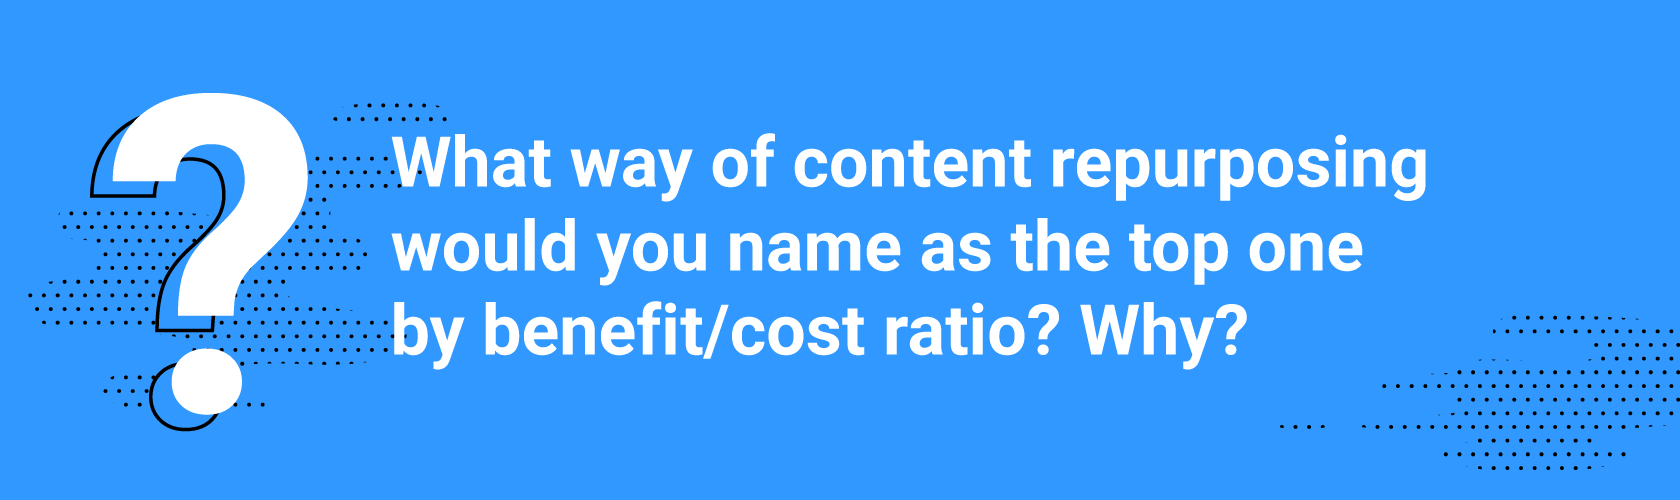 What content repurposing strategy would you name as thetop oneby benefit/cost ratio? Why?